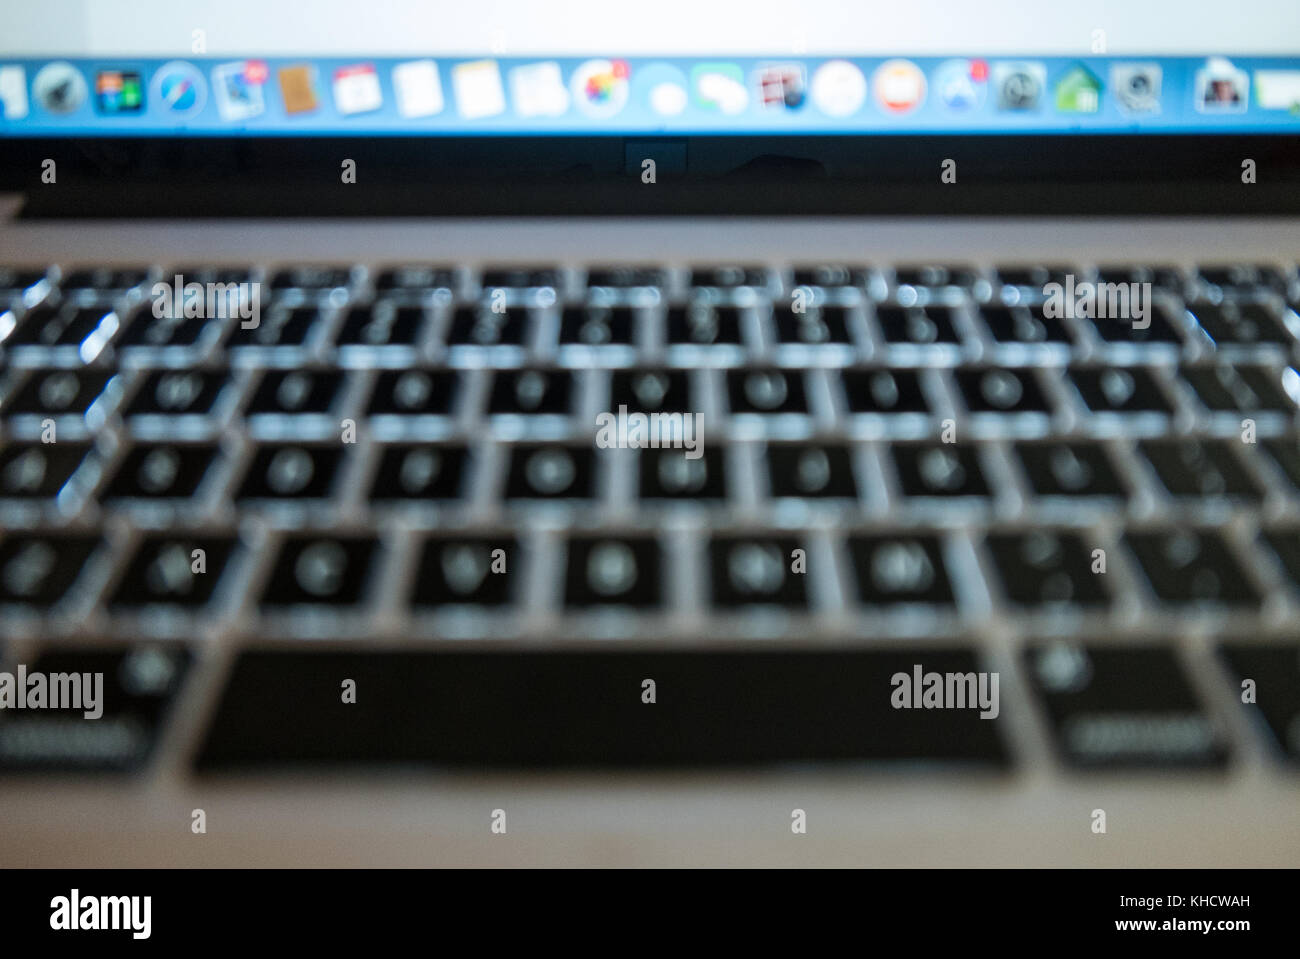 mac pro laptop keyboard and screen shot slightly out of